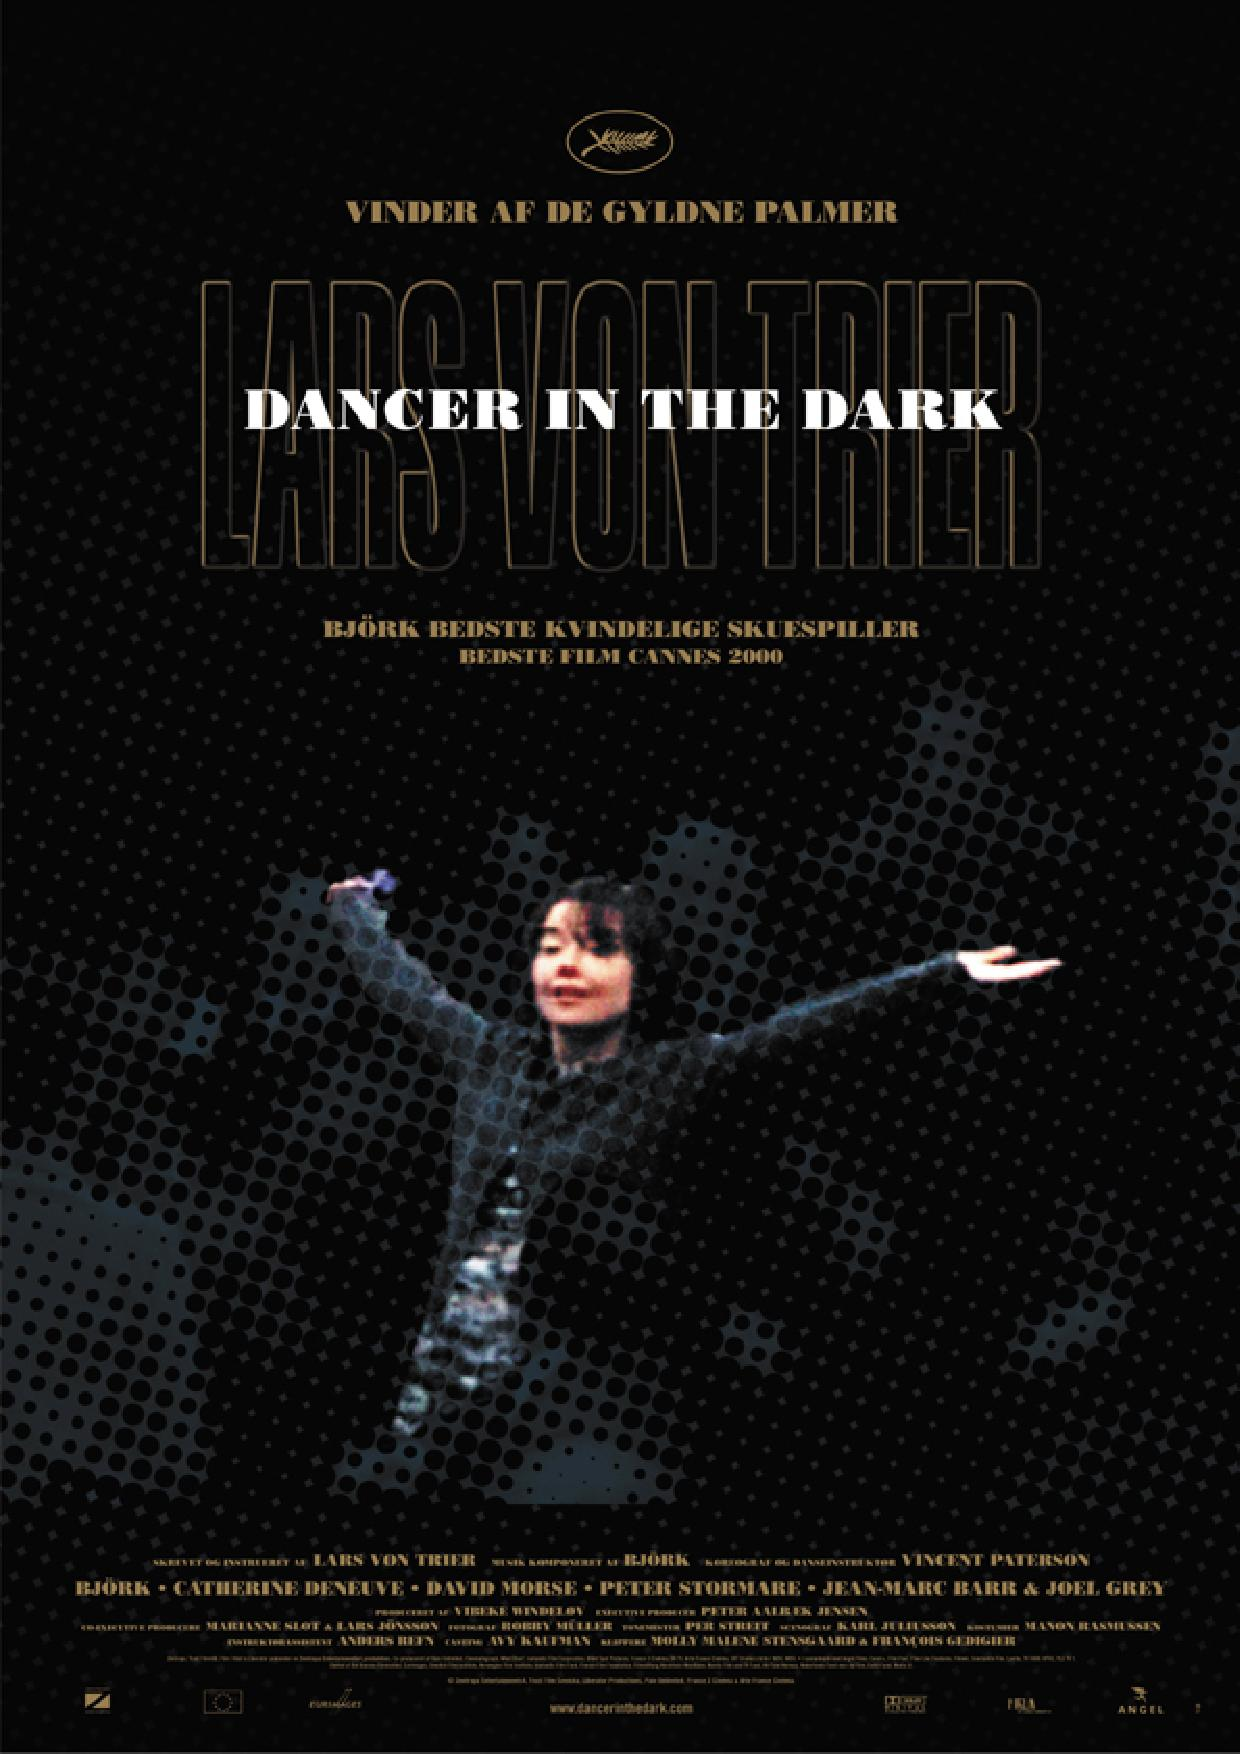 Dancer in the Dark  by  Lars Von Trier